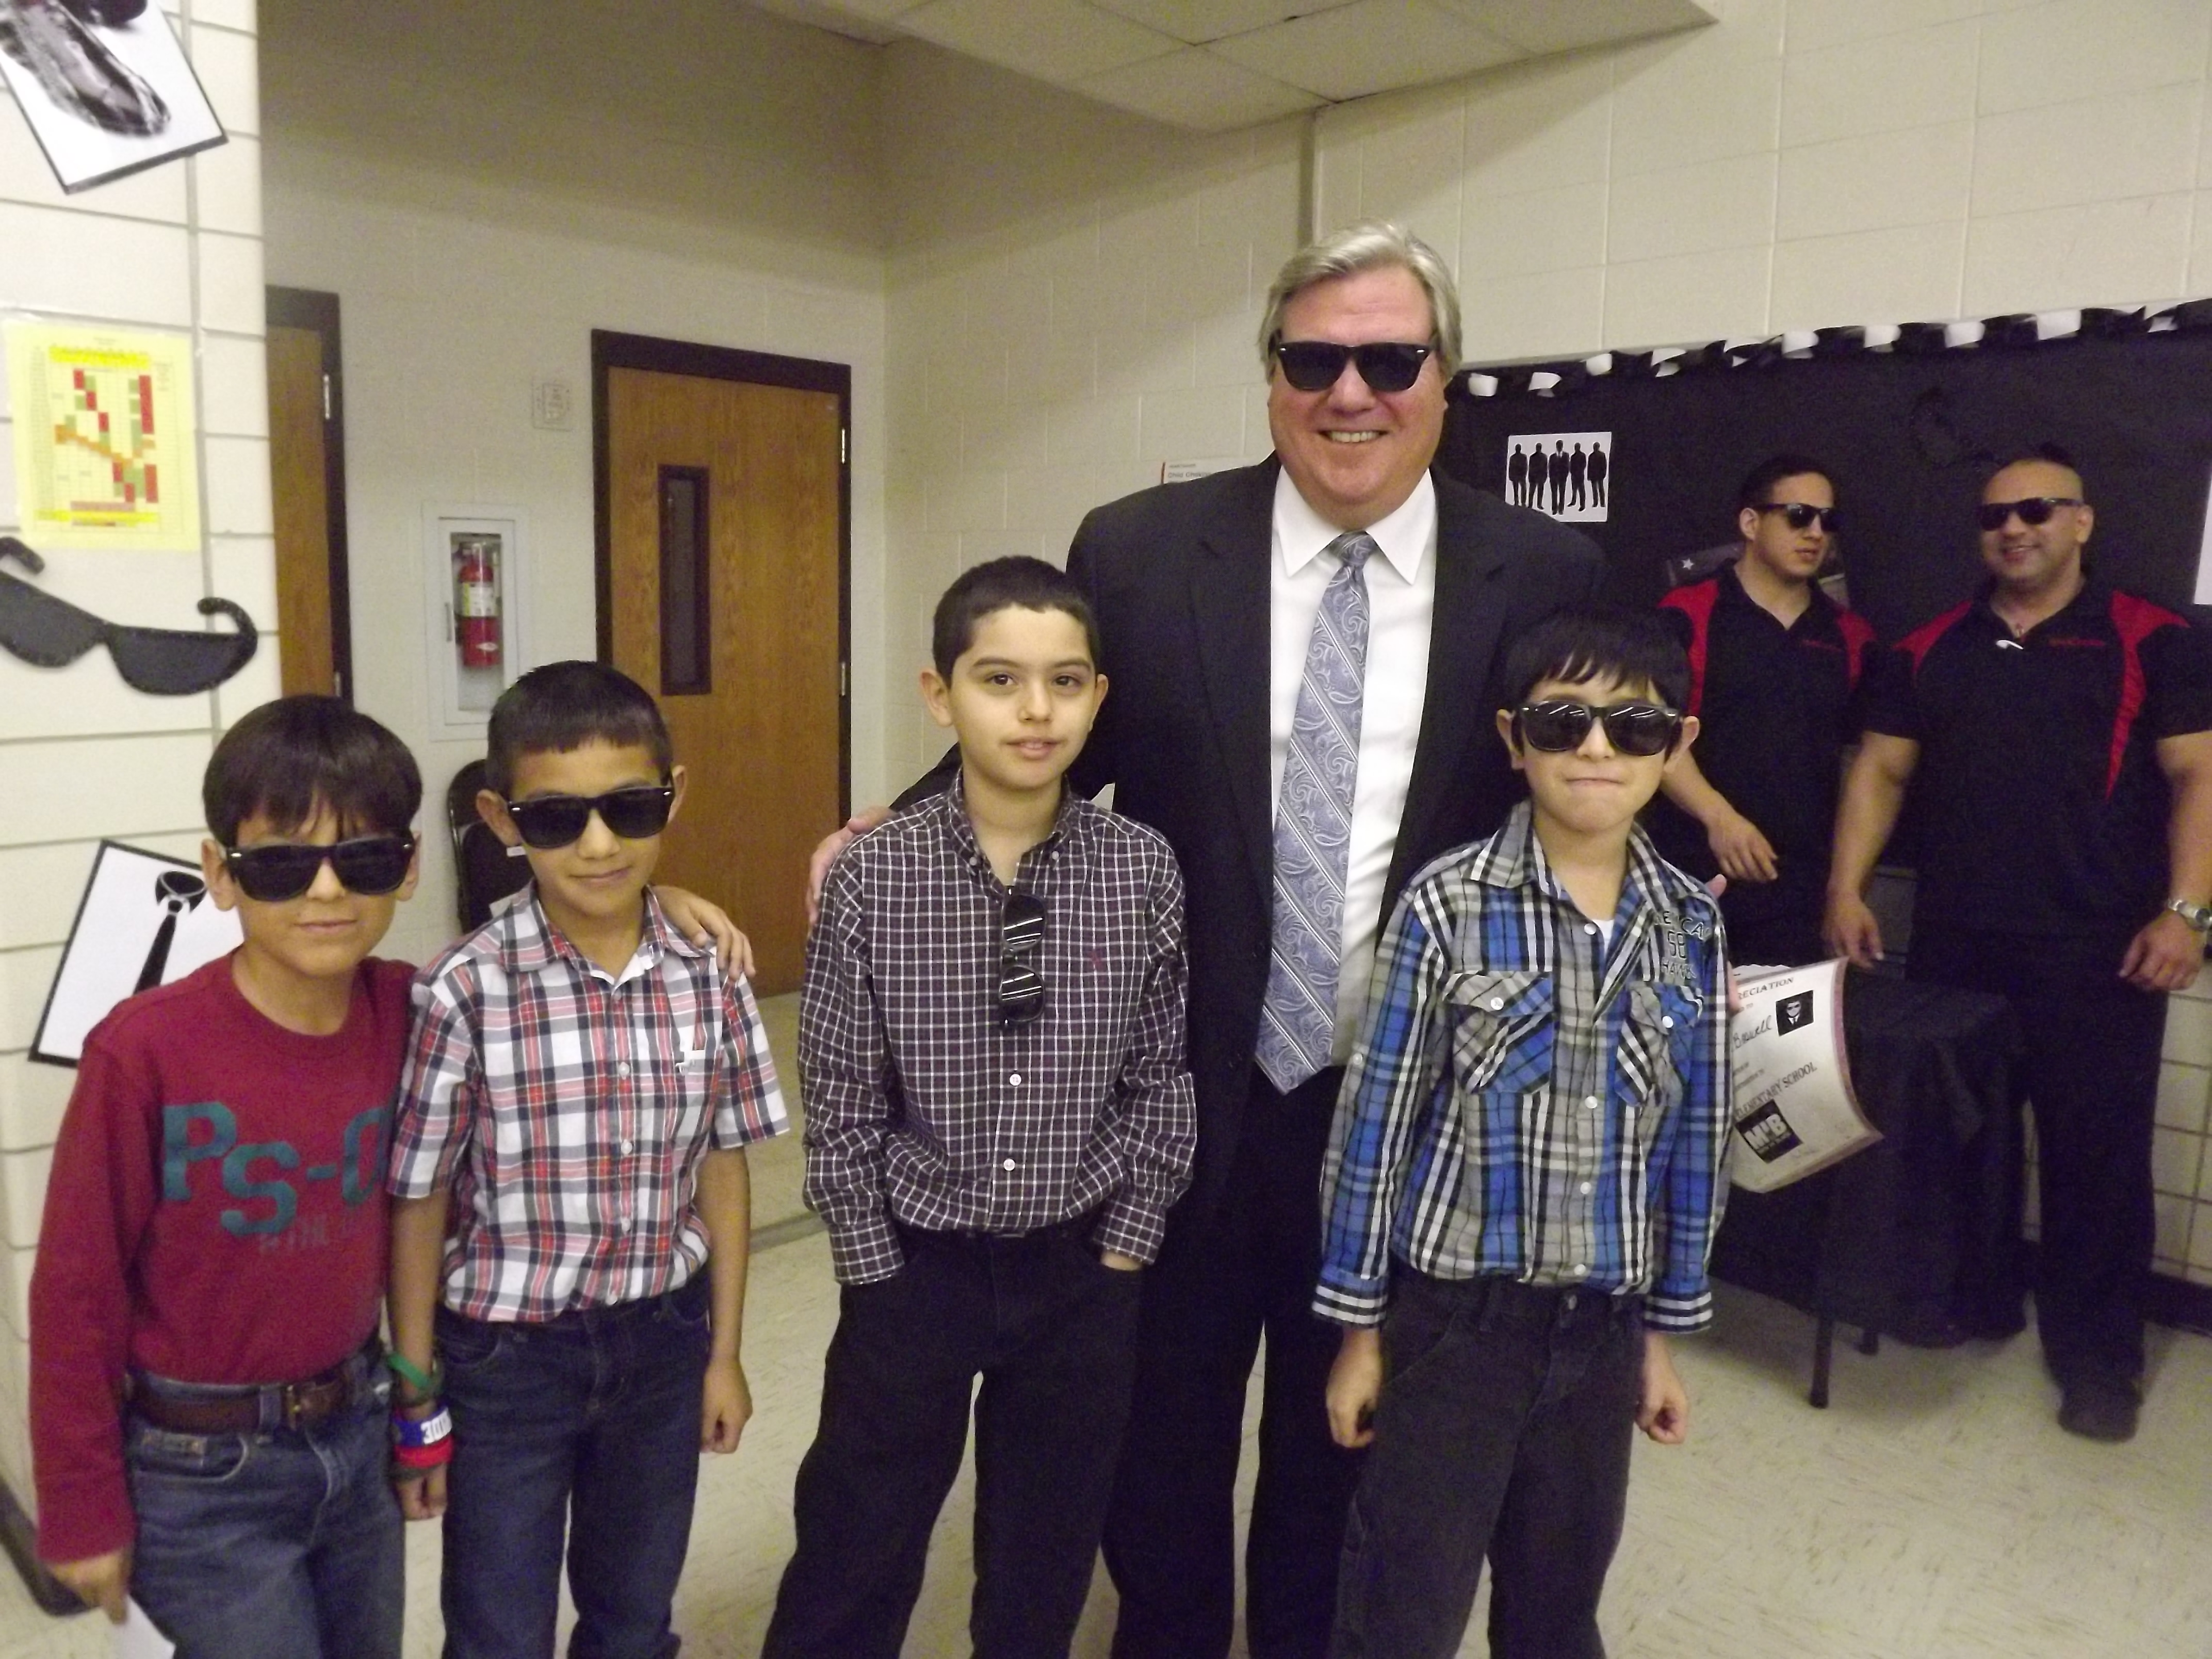 Ben Milam students dress to impress at career day